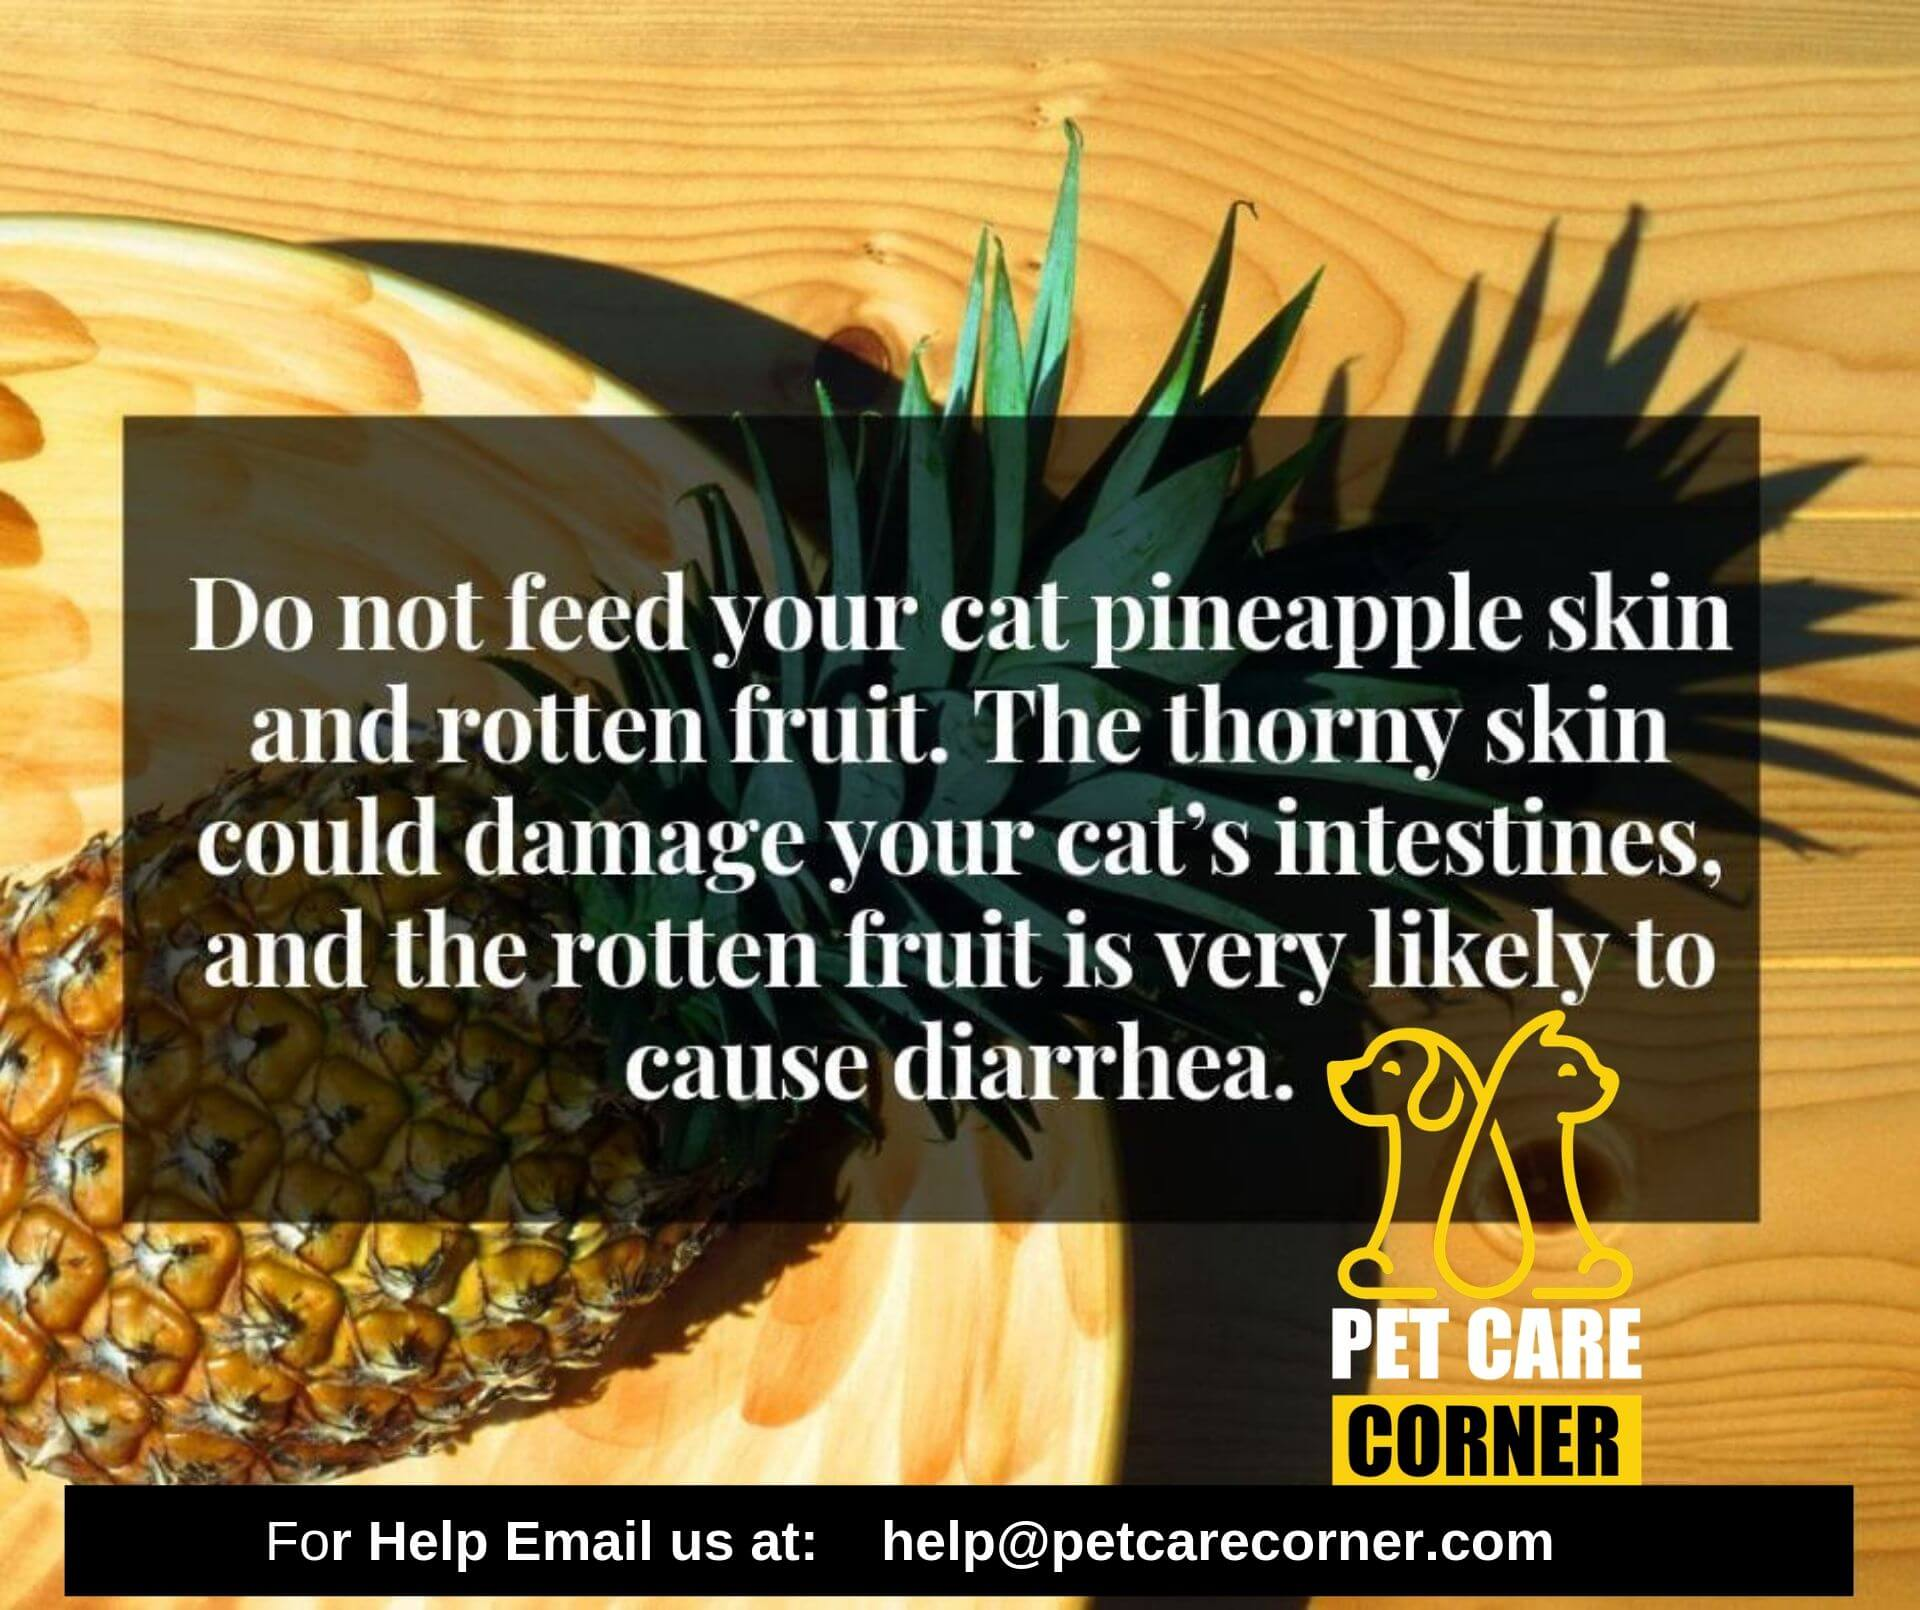 can cats eat pineapple leaves or skin